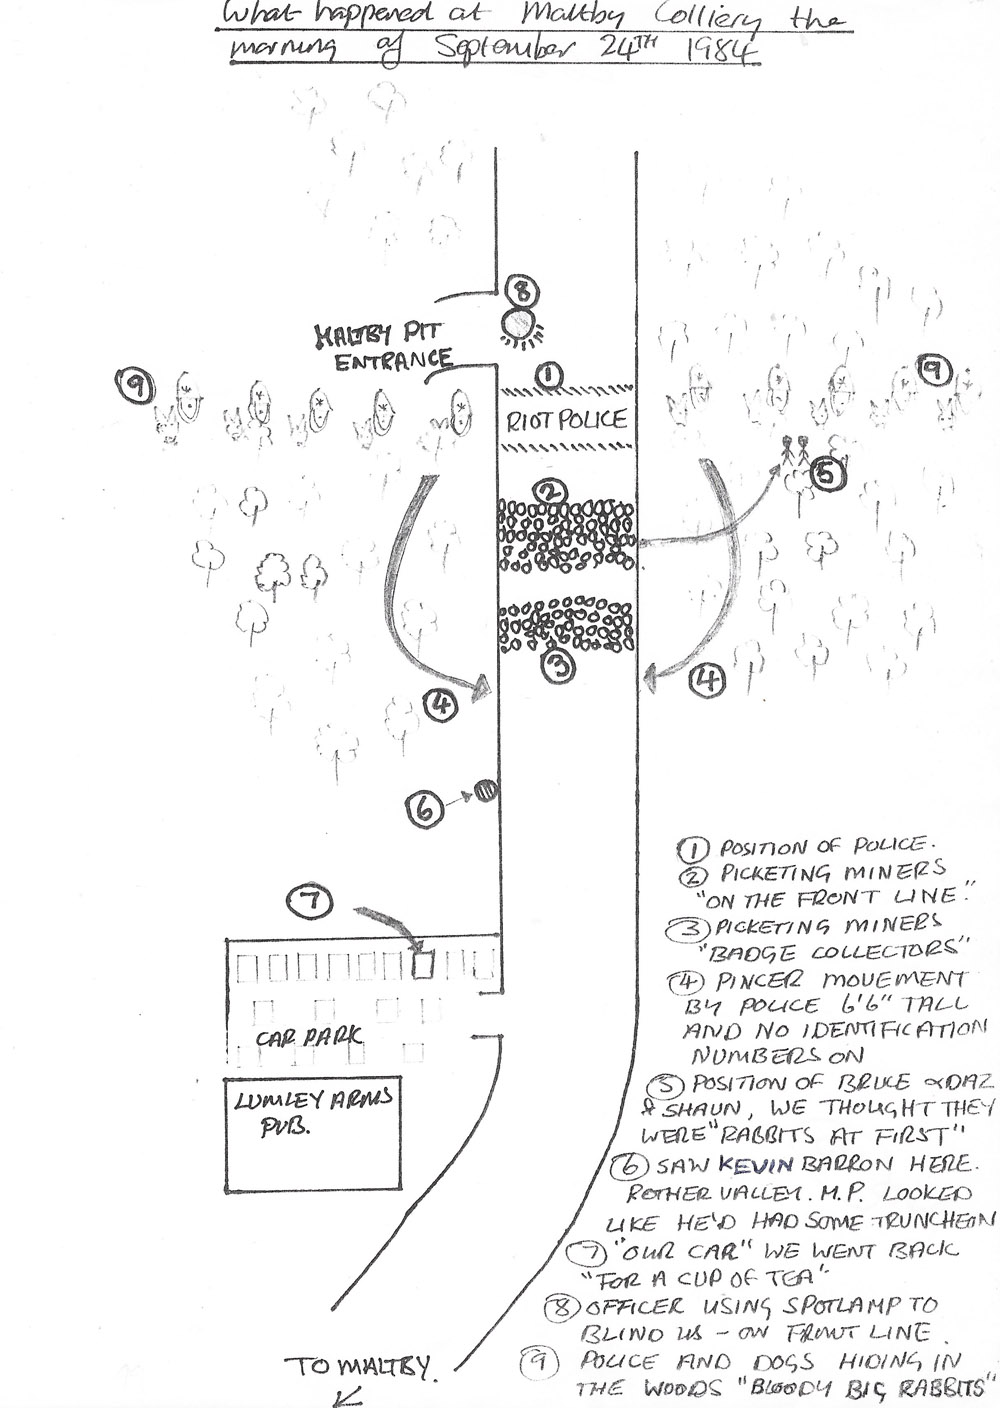 A Drawing by Bruce Wilson to explain events on the morning of Monday 24th September 1984 at Maltby Colliery.